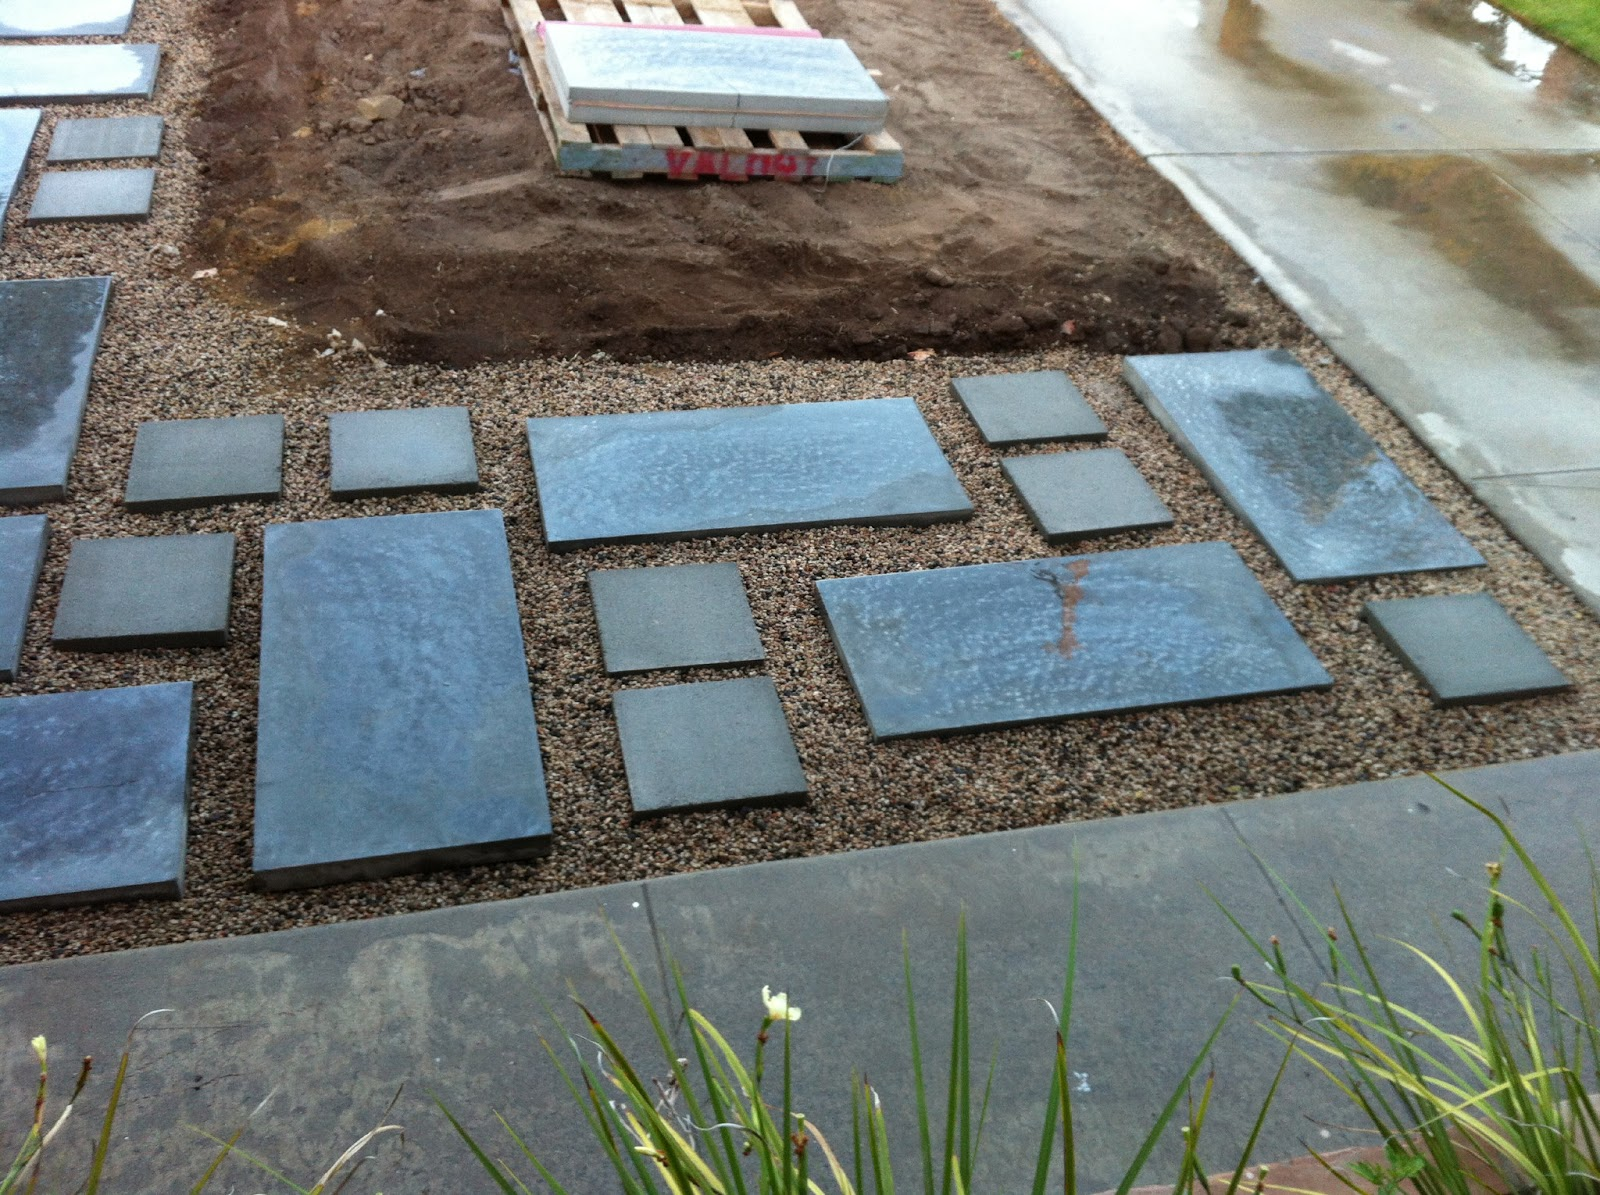 How to plant ground cover between pavers - Then We Laid The Front Walkway After Digging A Pile Of Dirt Out And Then Adding Base Pavers And Gravel